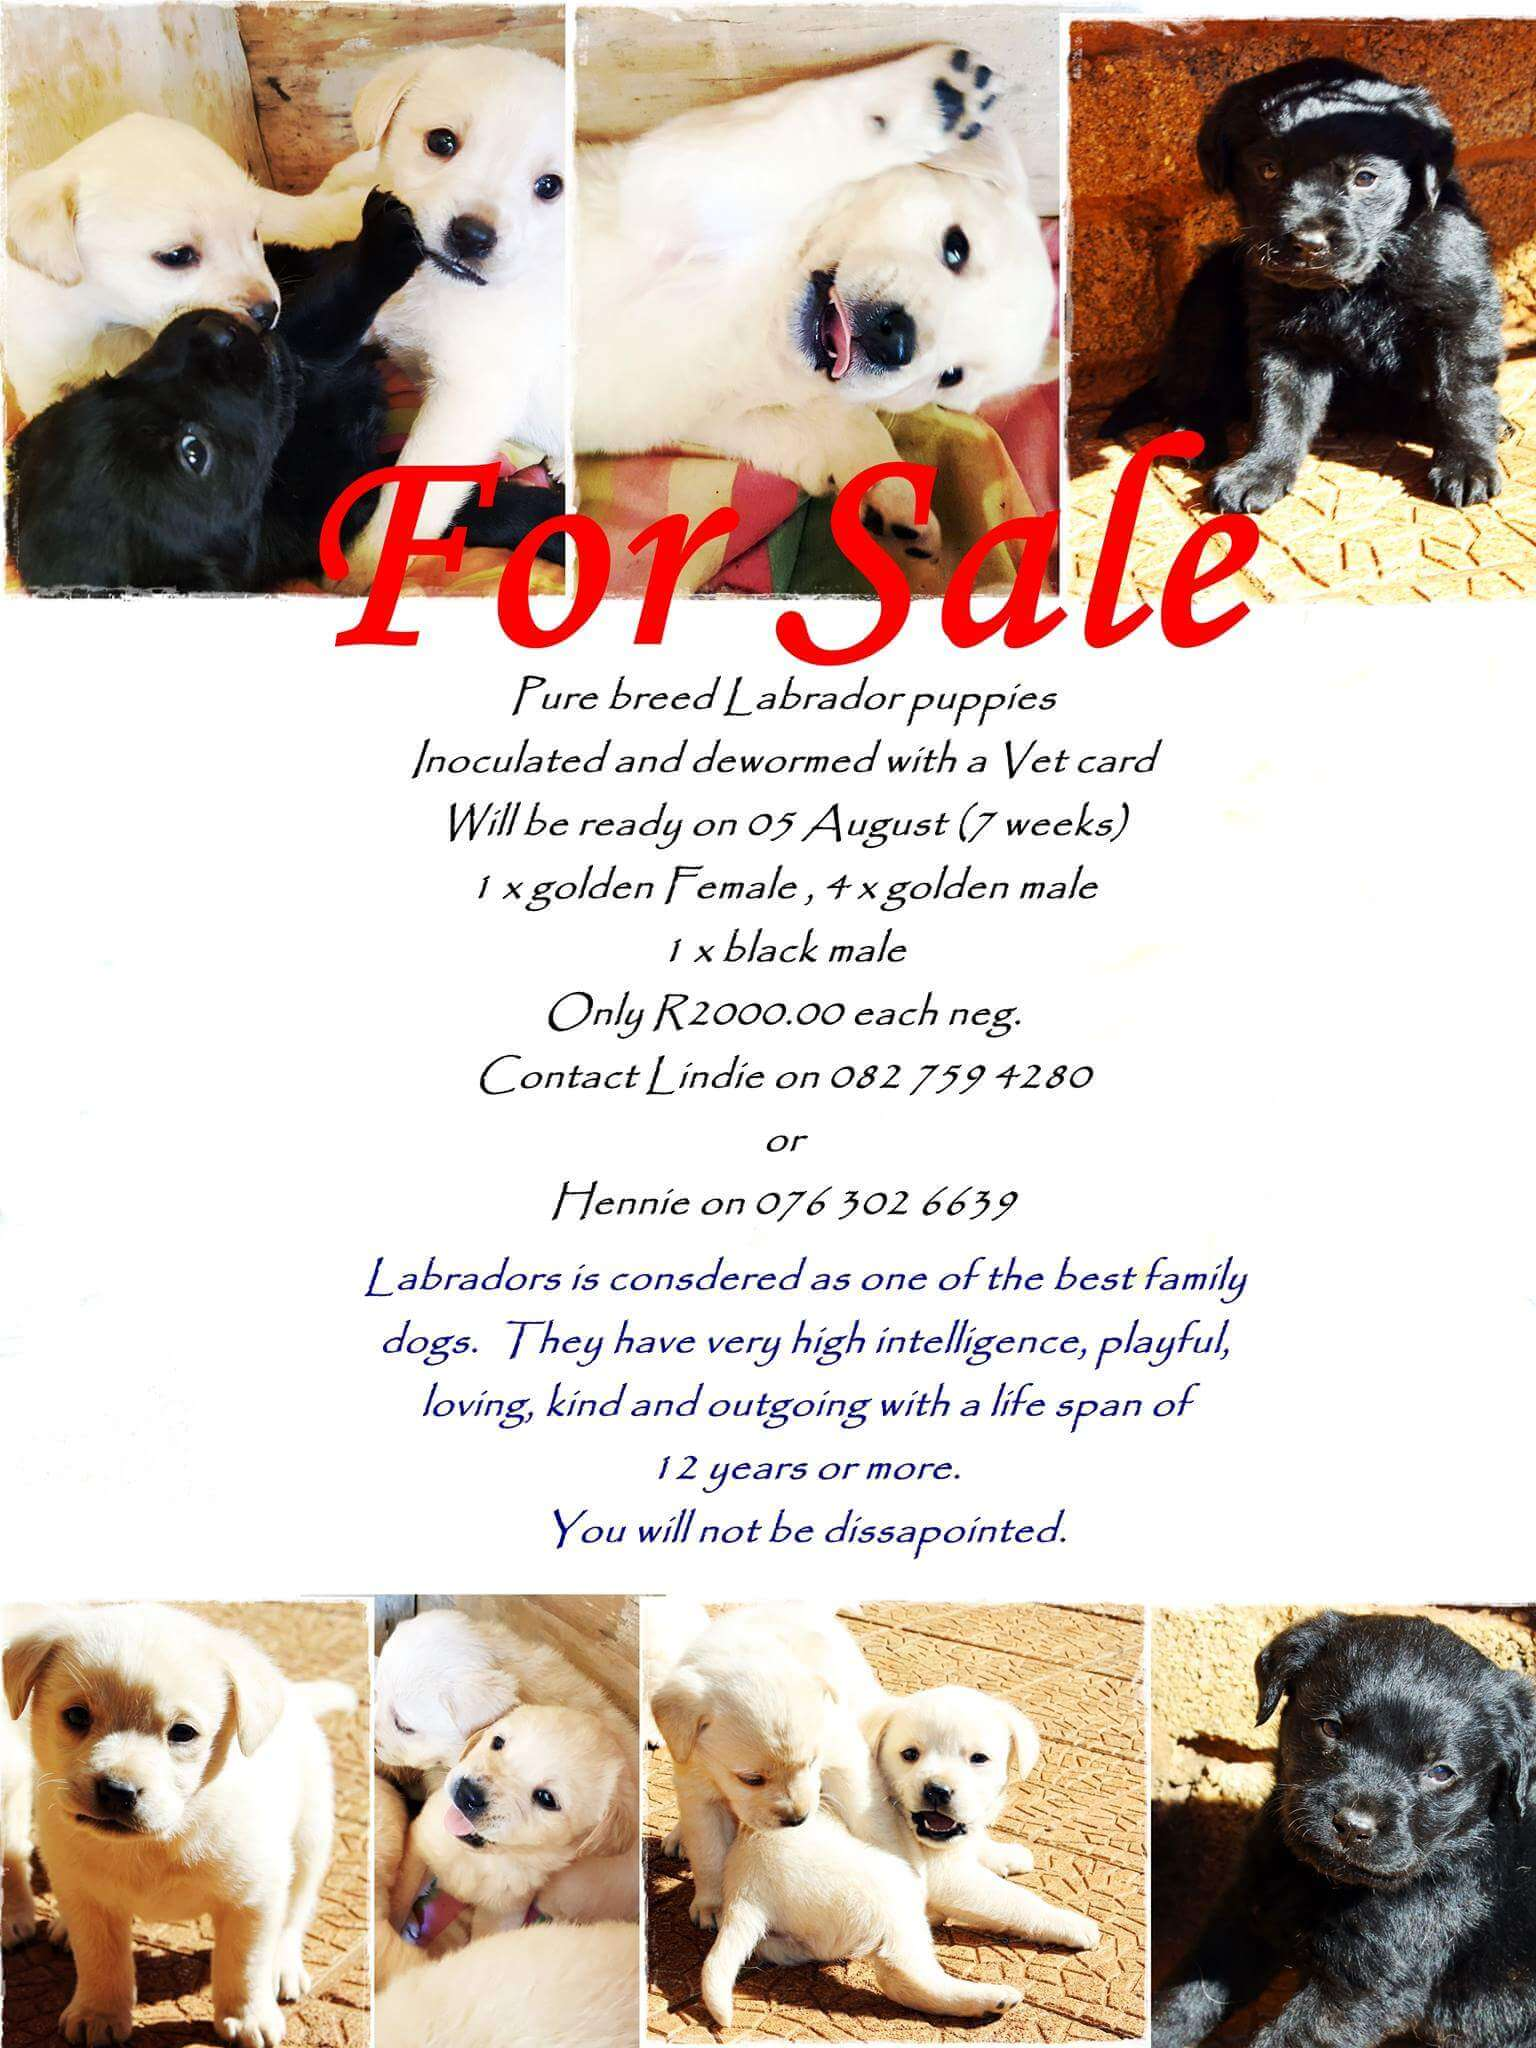 Labrador Puppies for Sale in Other by Lindie Rademeyer